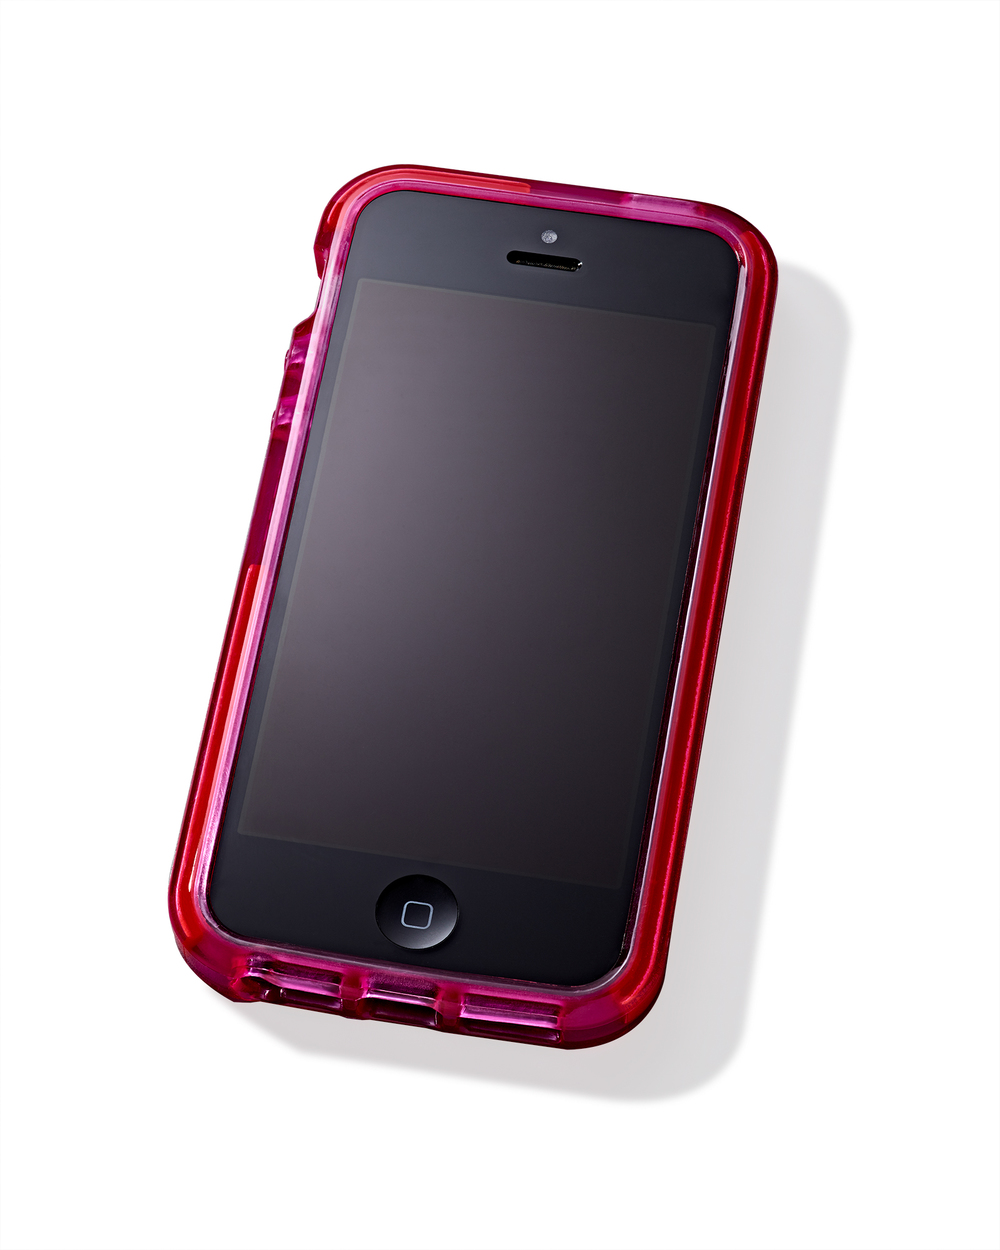 iPhone cellphone with hot pink case on white background